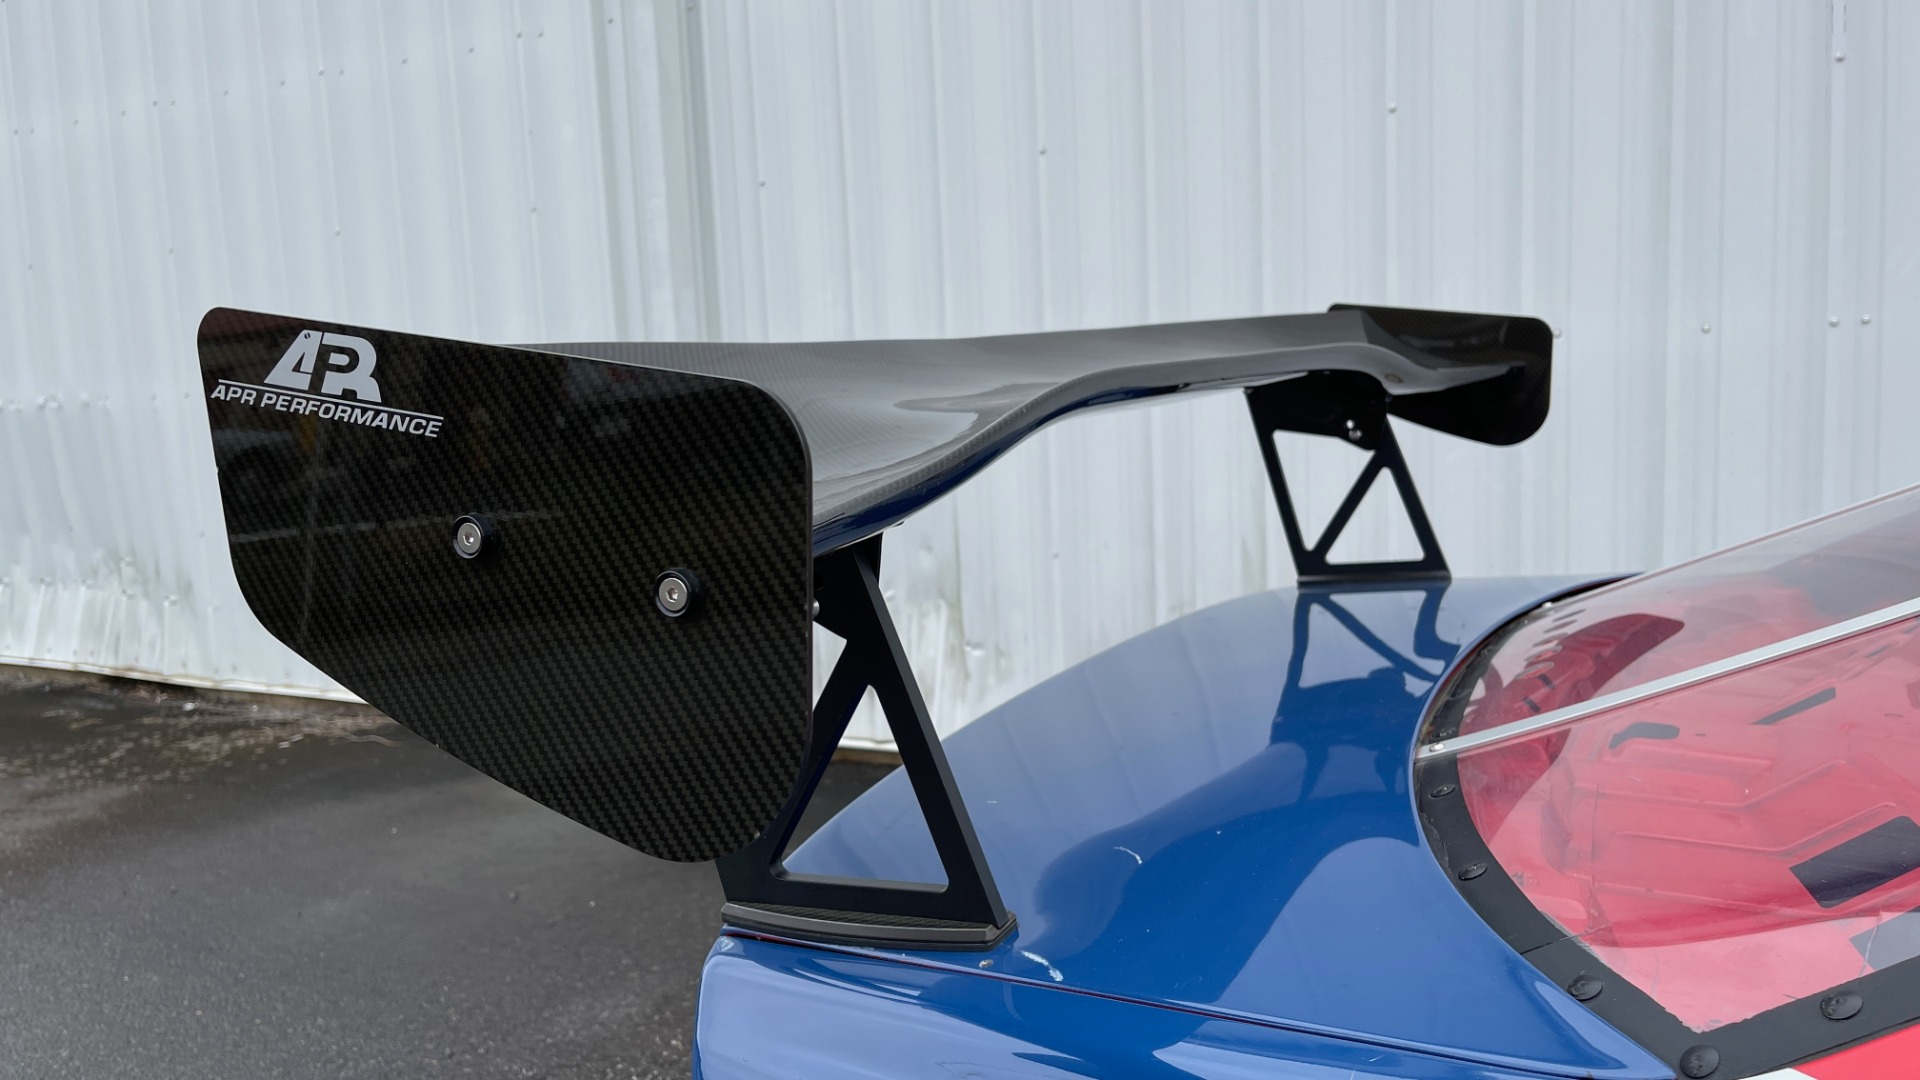 Used 1996 BMW 3-SERIES M3 TRACK CAR / 5-SPD / MANUAL / FULL CAGE / CARBON FIBER WING for sale $47,995 at Formula Imports in Charlotte NC 28227 11